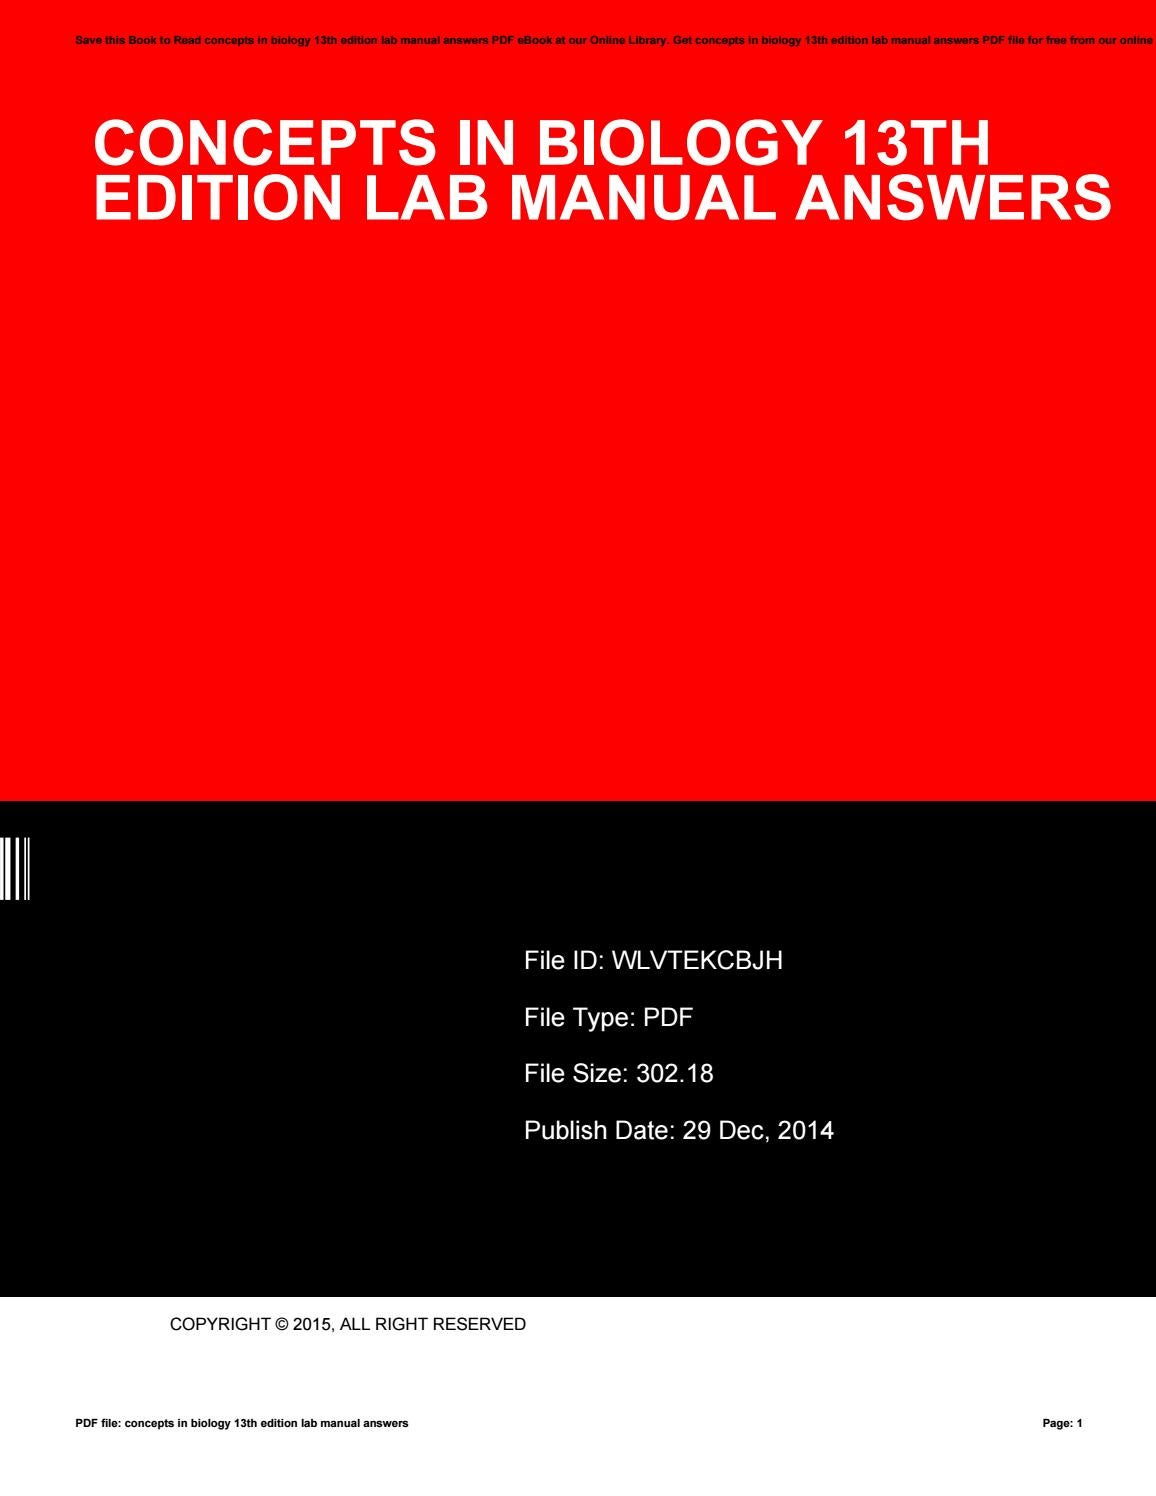 Concepts in biology 13th edition lab manual answers by Roscoe Kemp - issuu